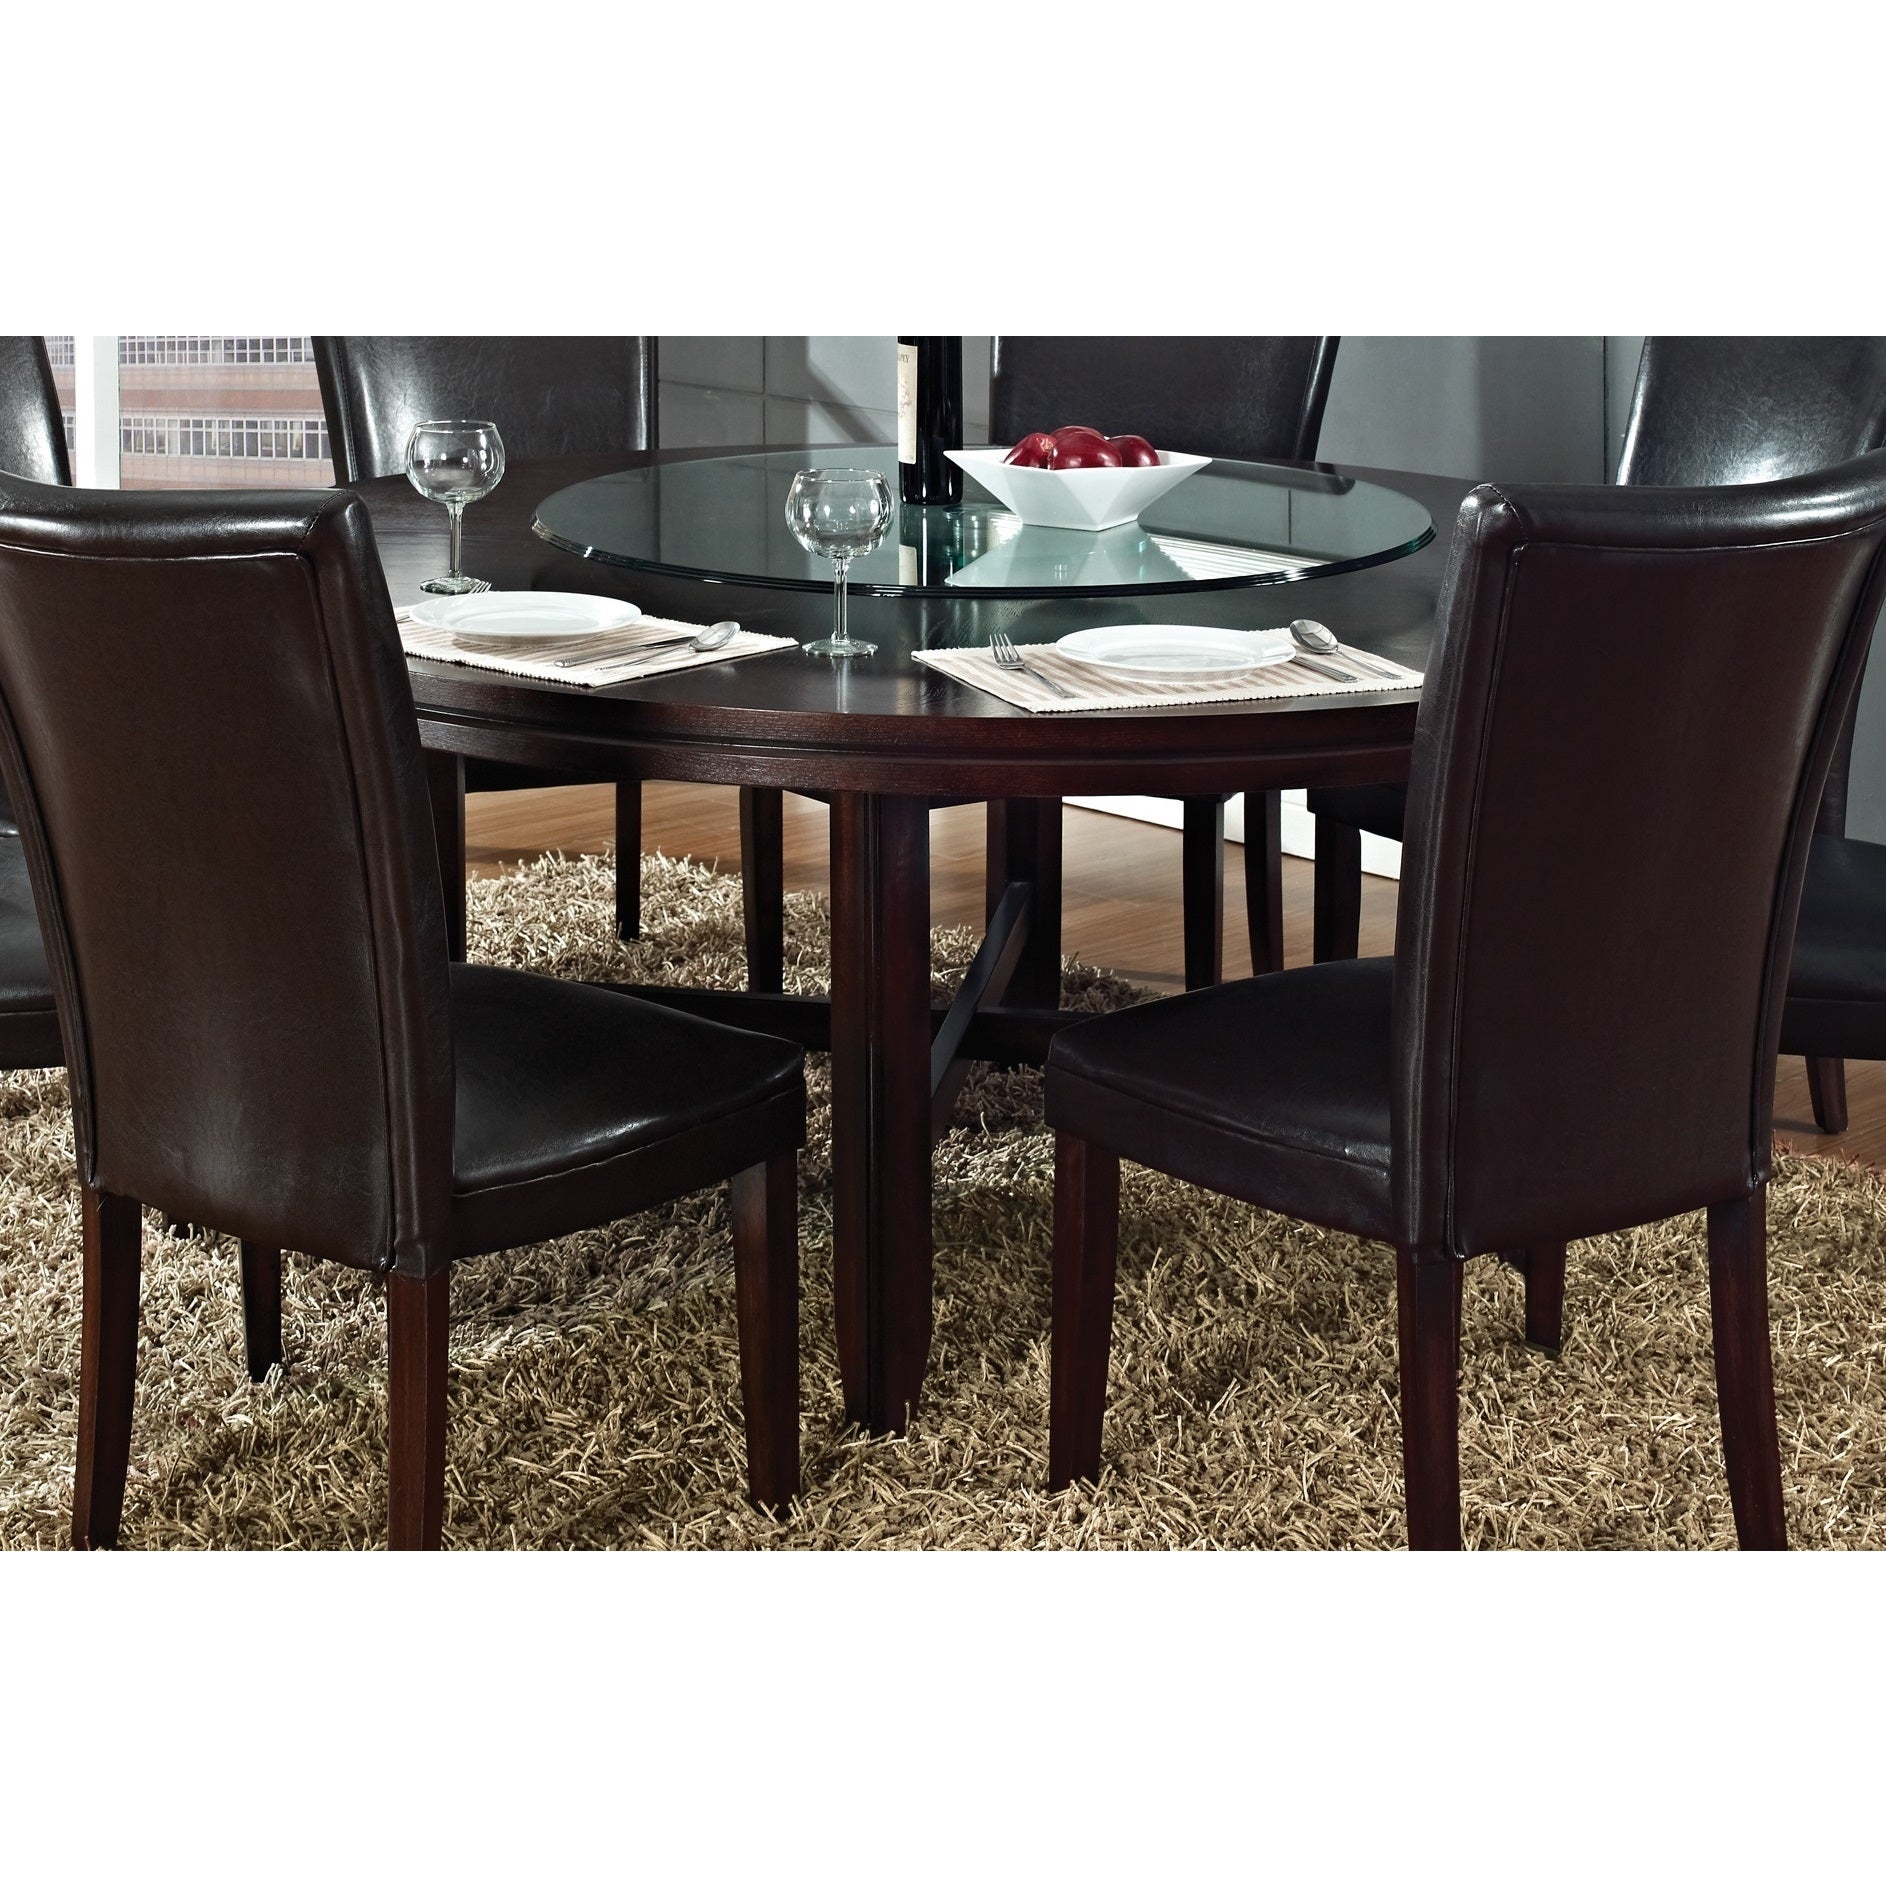 Greyson Living Hampton Dark Brown Cherry 72 Inch Round Dining Table